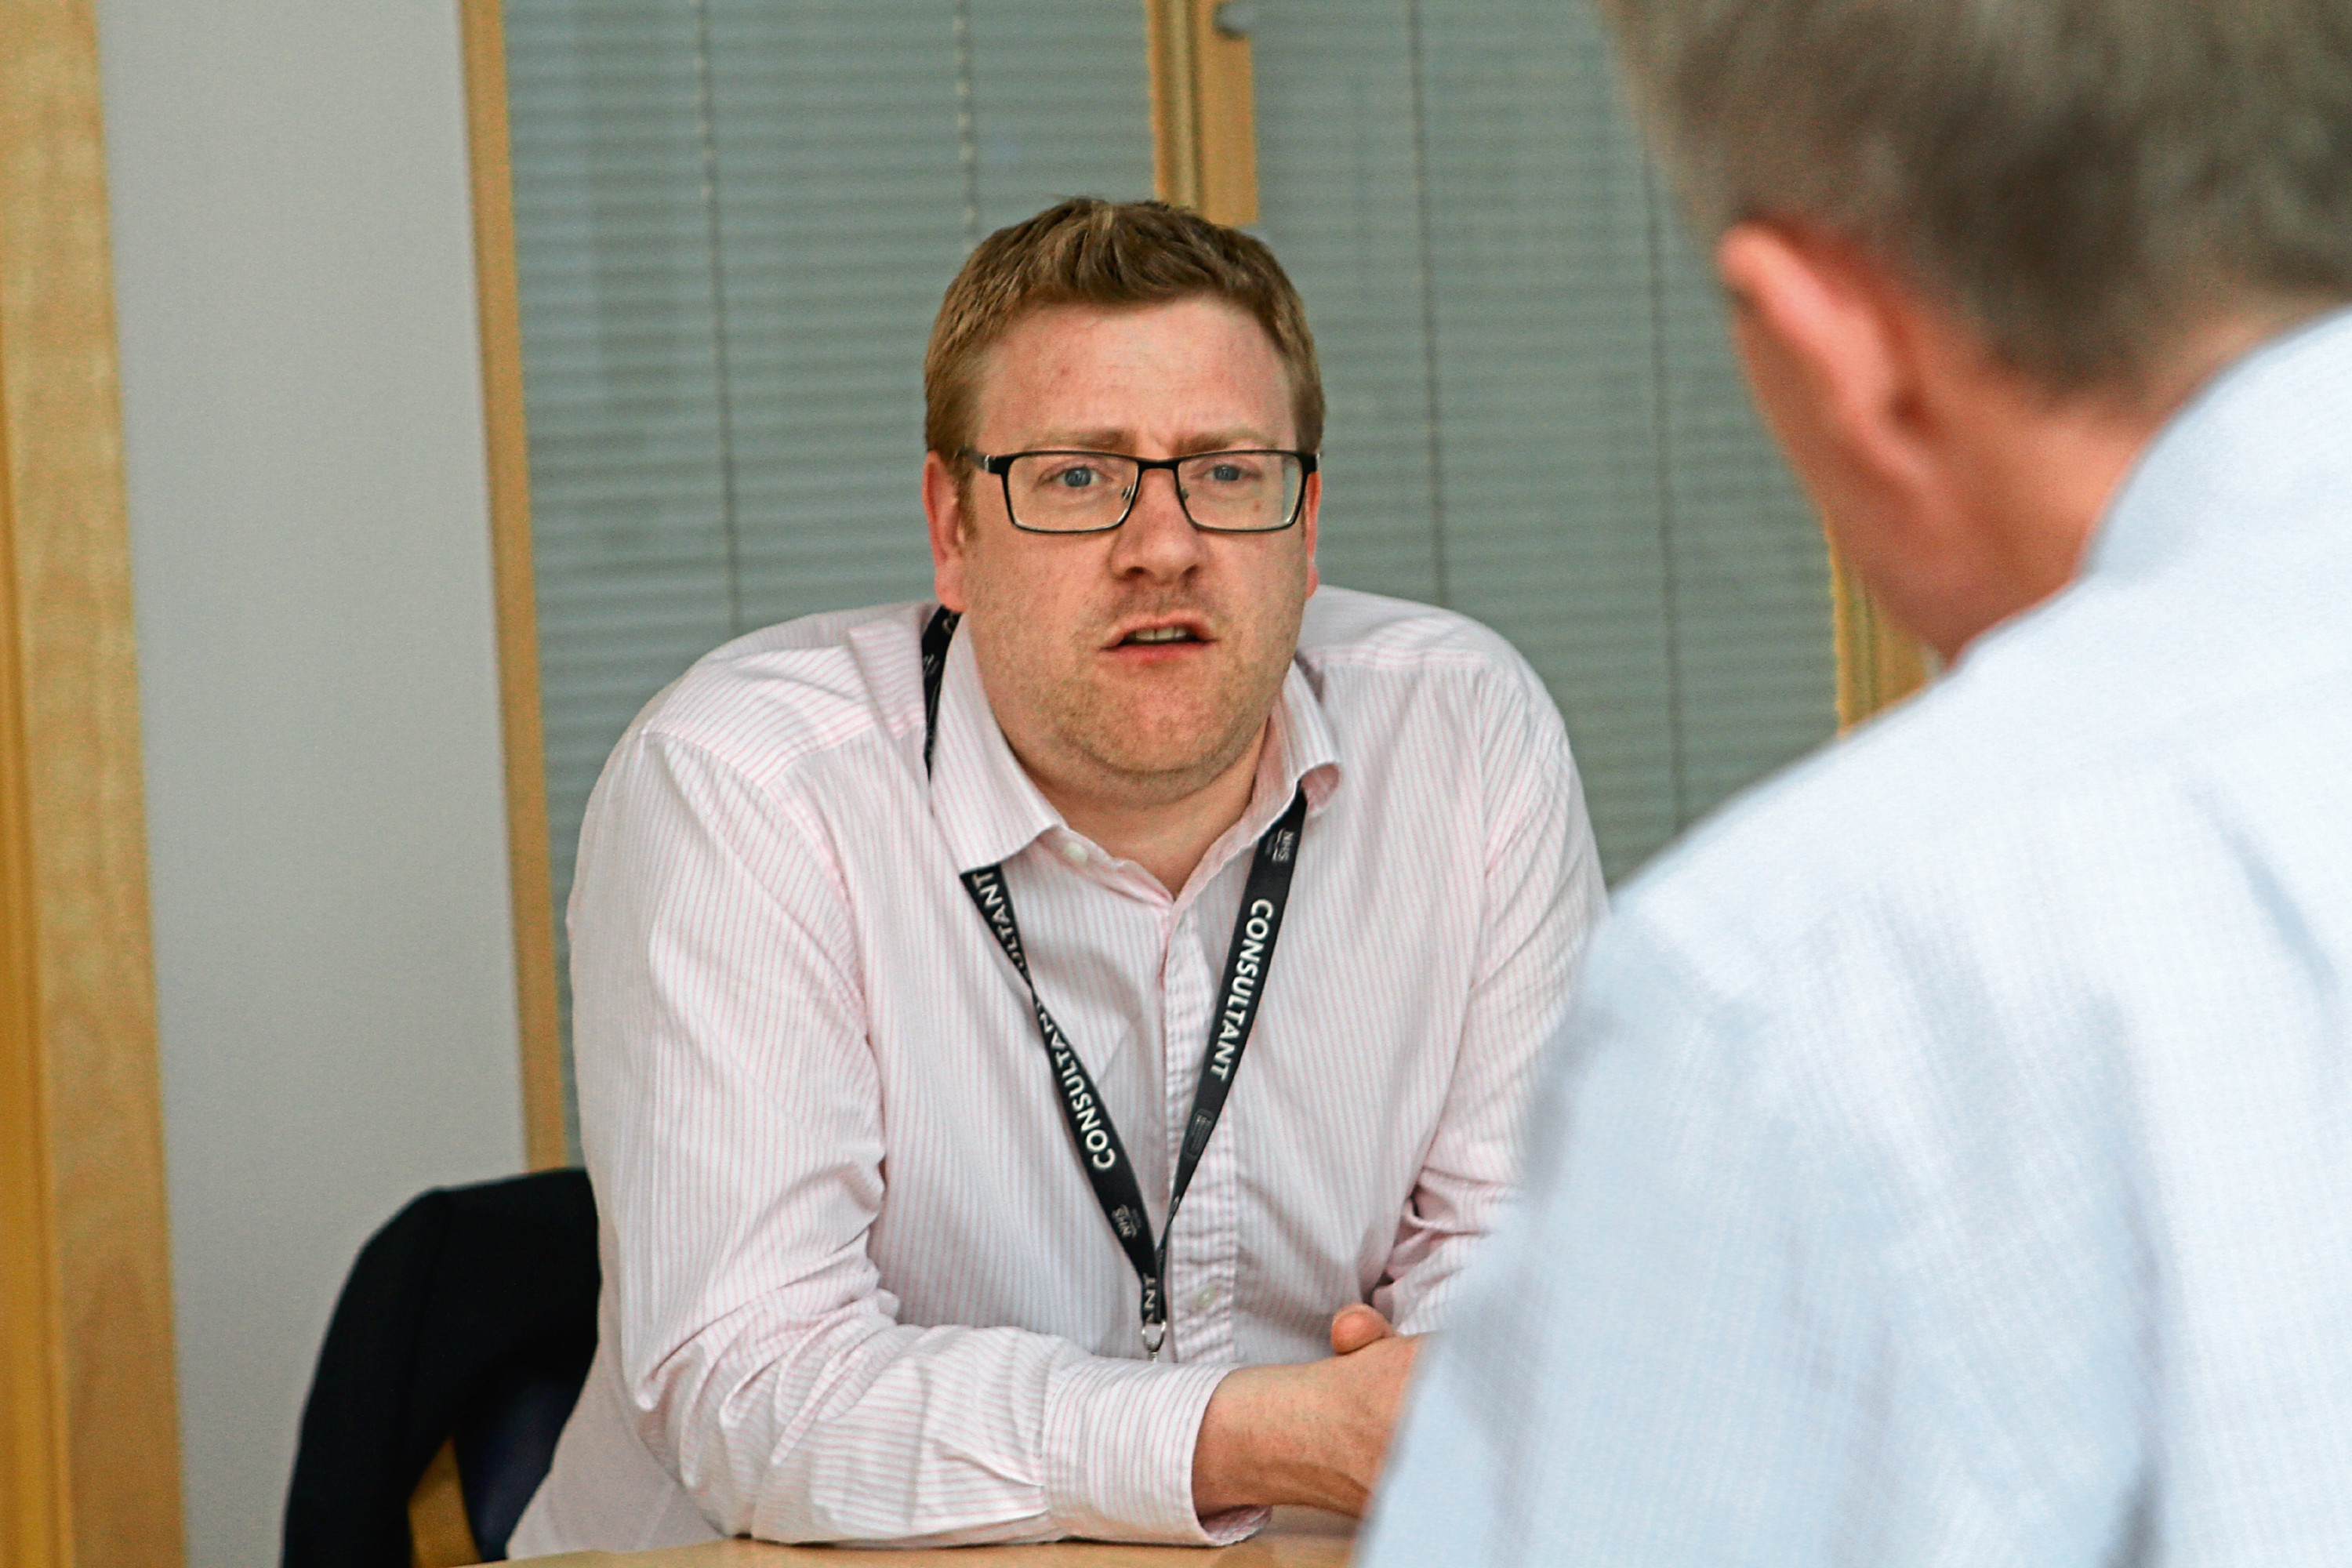 Dr. Chris Schofield - lead clinician for diabetes and endocrinology for NHS Tayside.